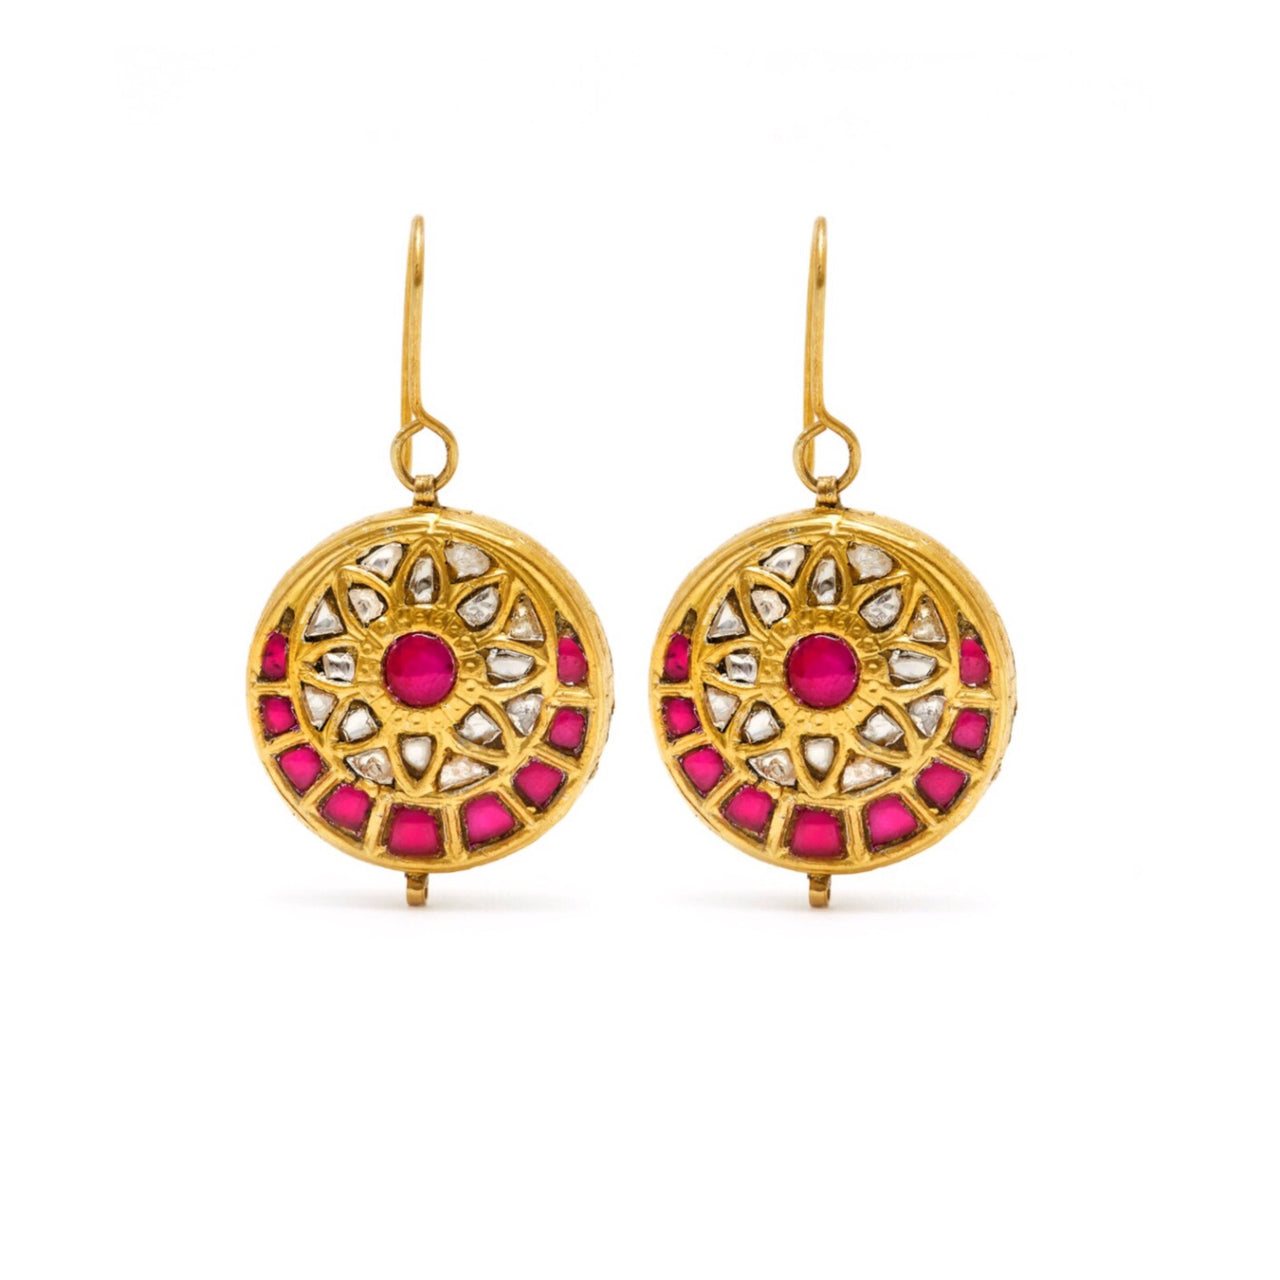 Jaipur Aterlier Pink Ruby Flower Coin Earrings